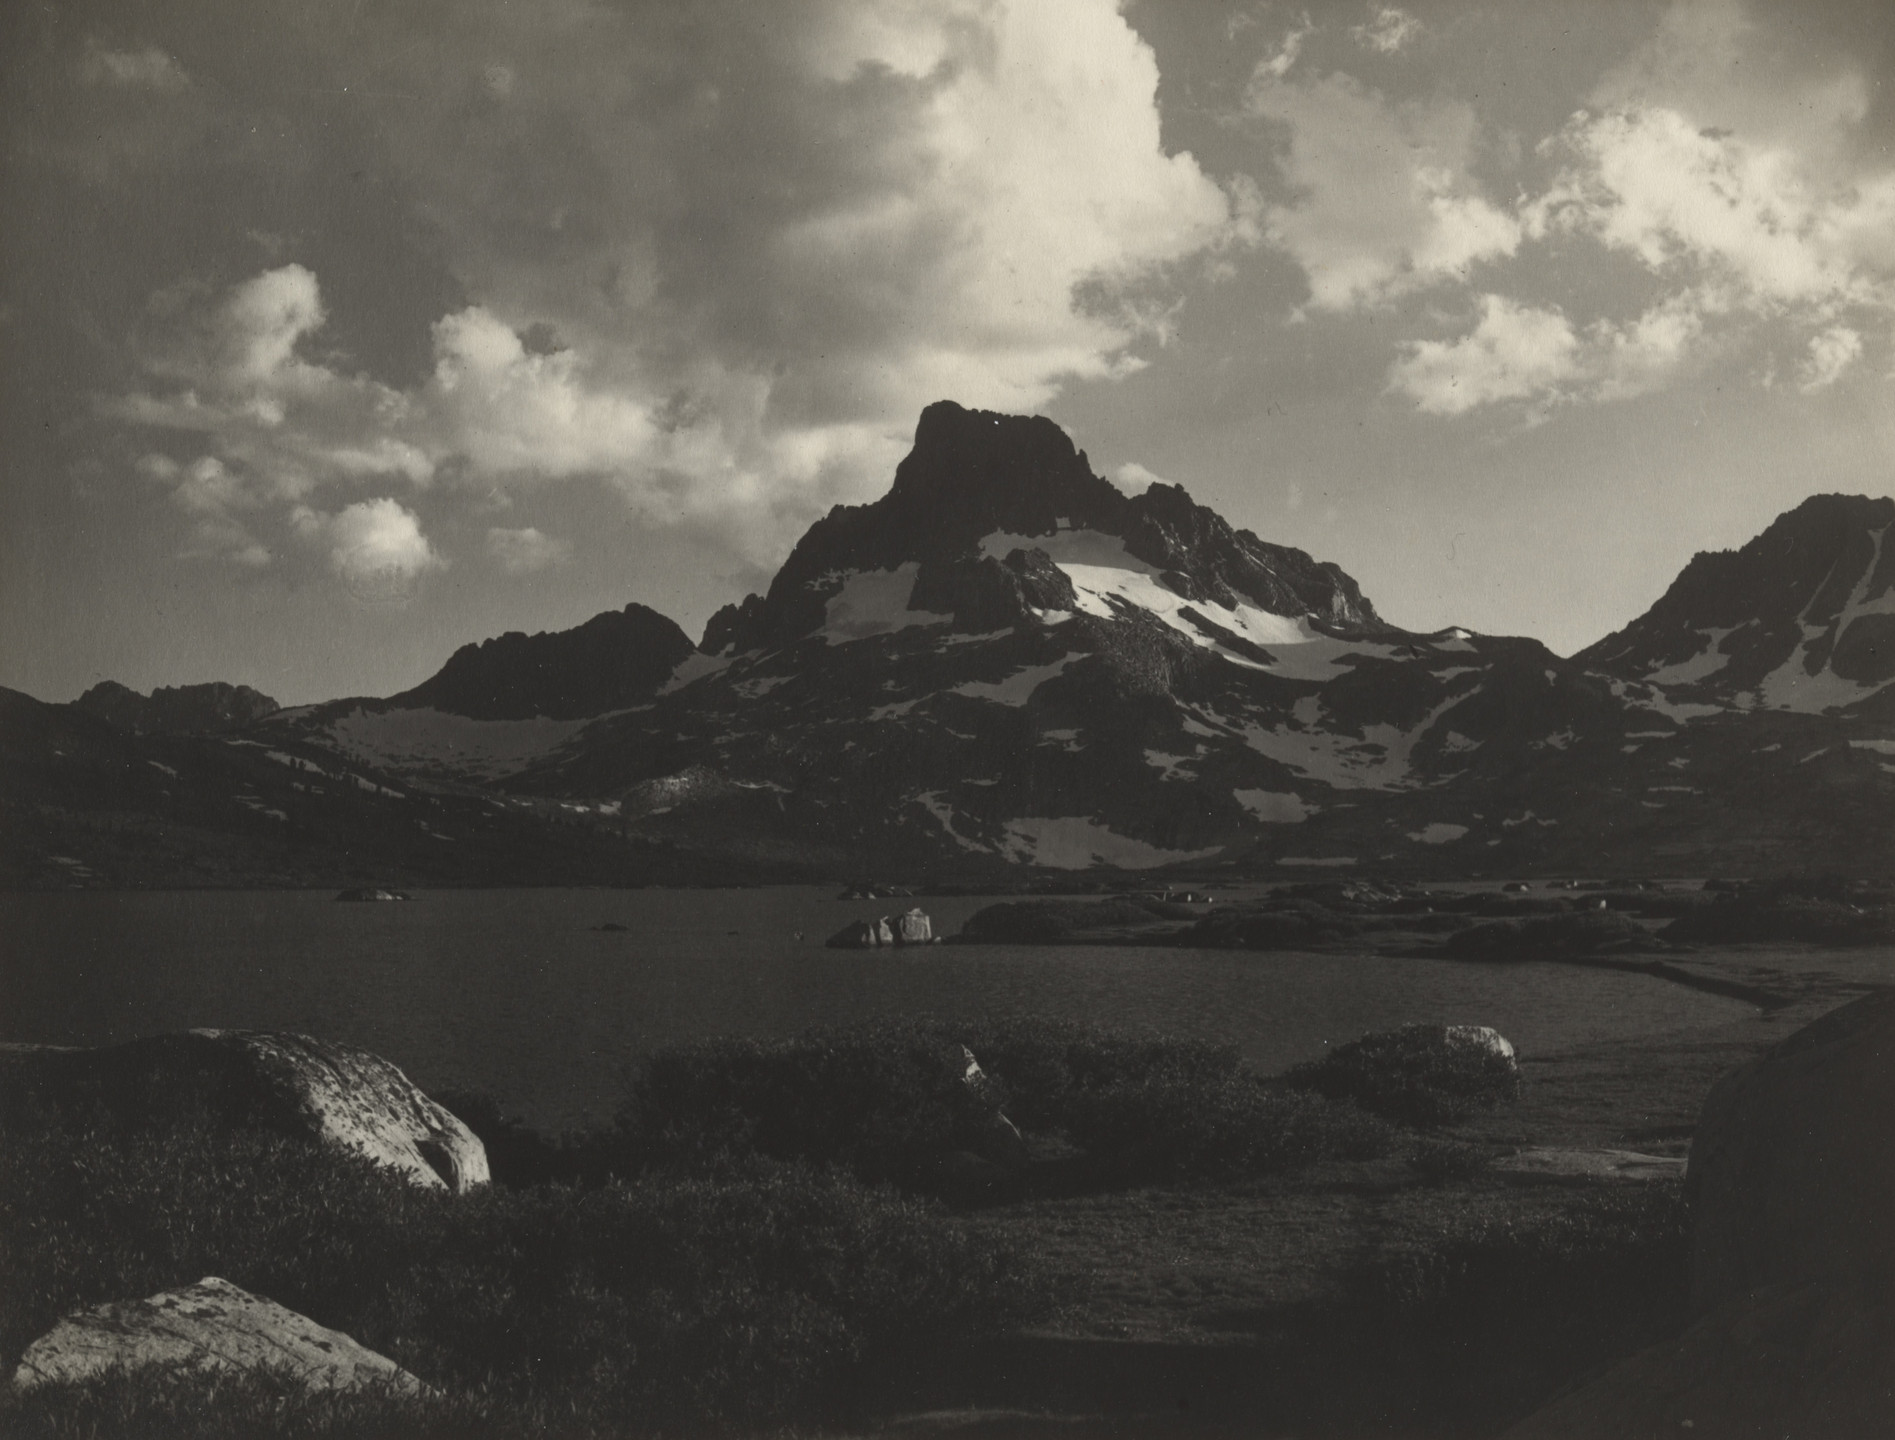 Ansel Adams. Banner Peak and Thousand Island at Sunset. 1923